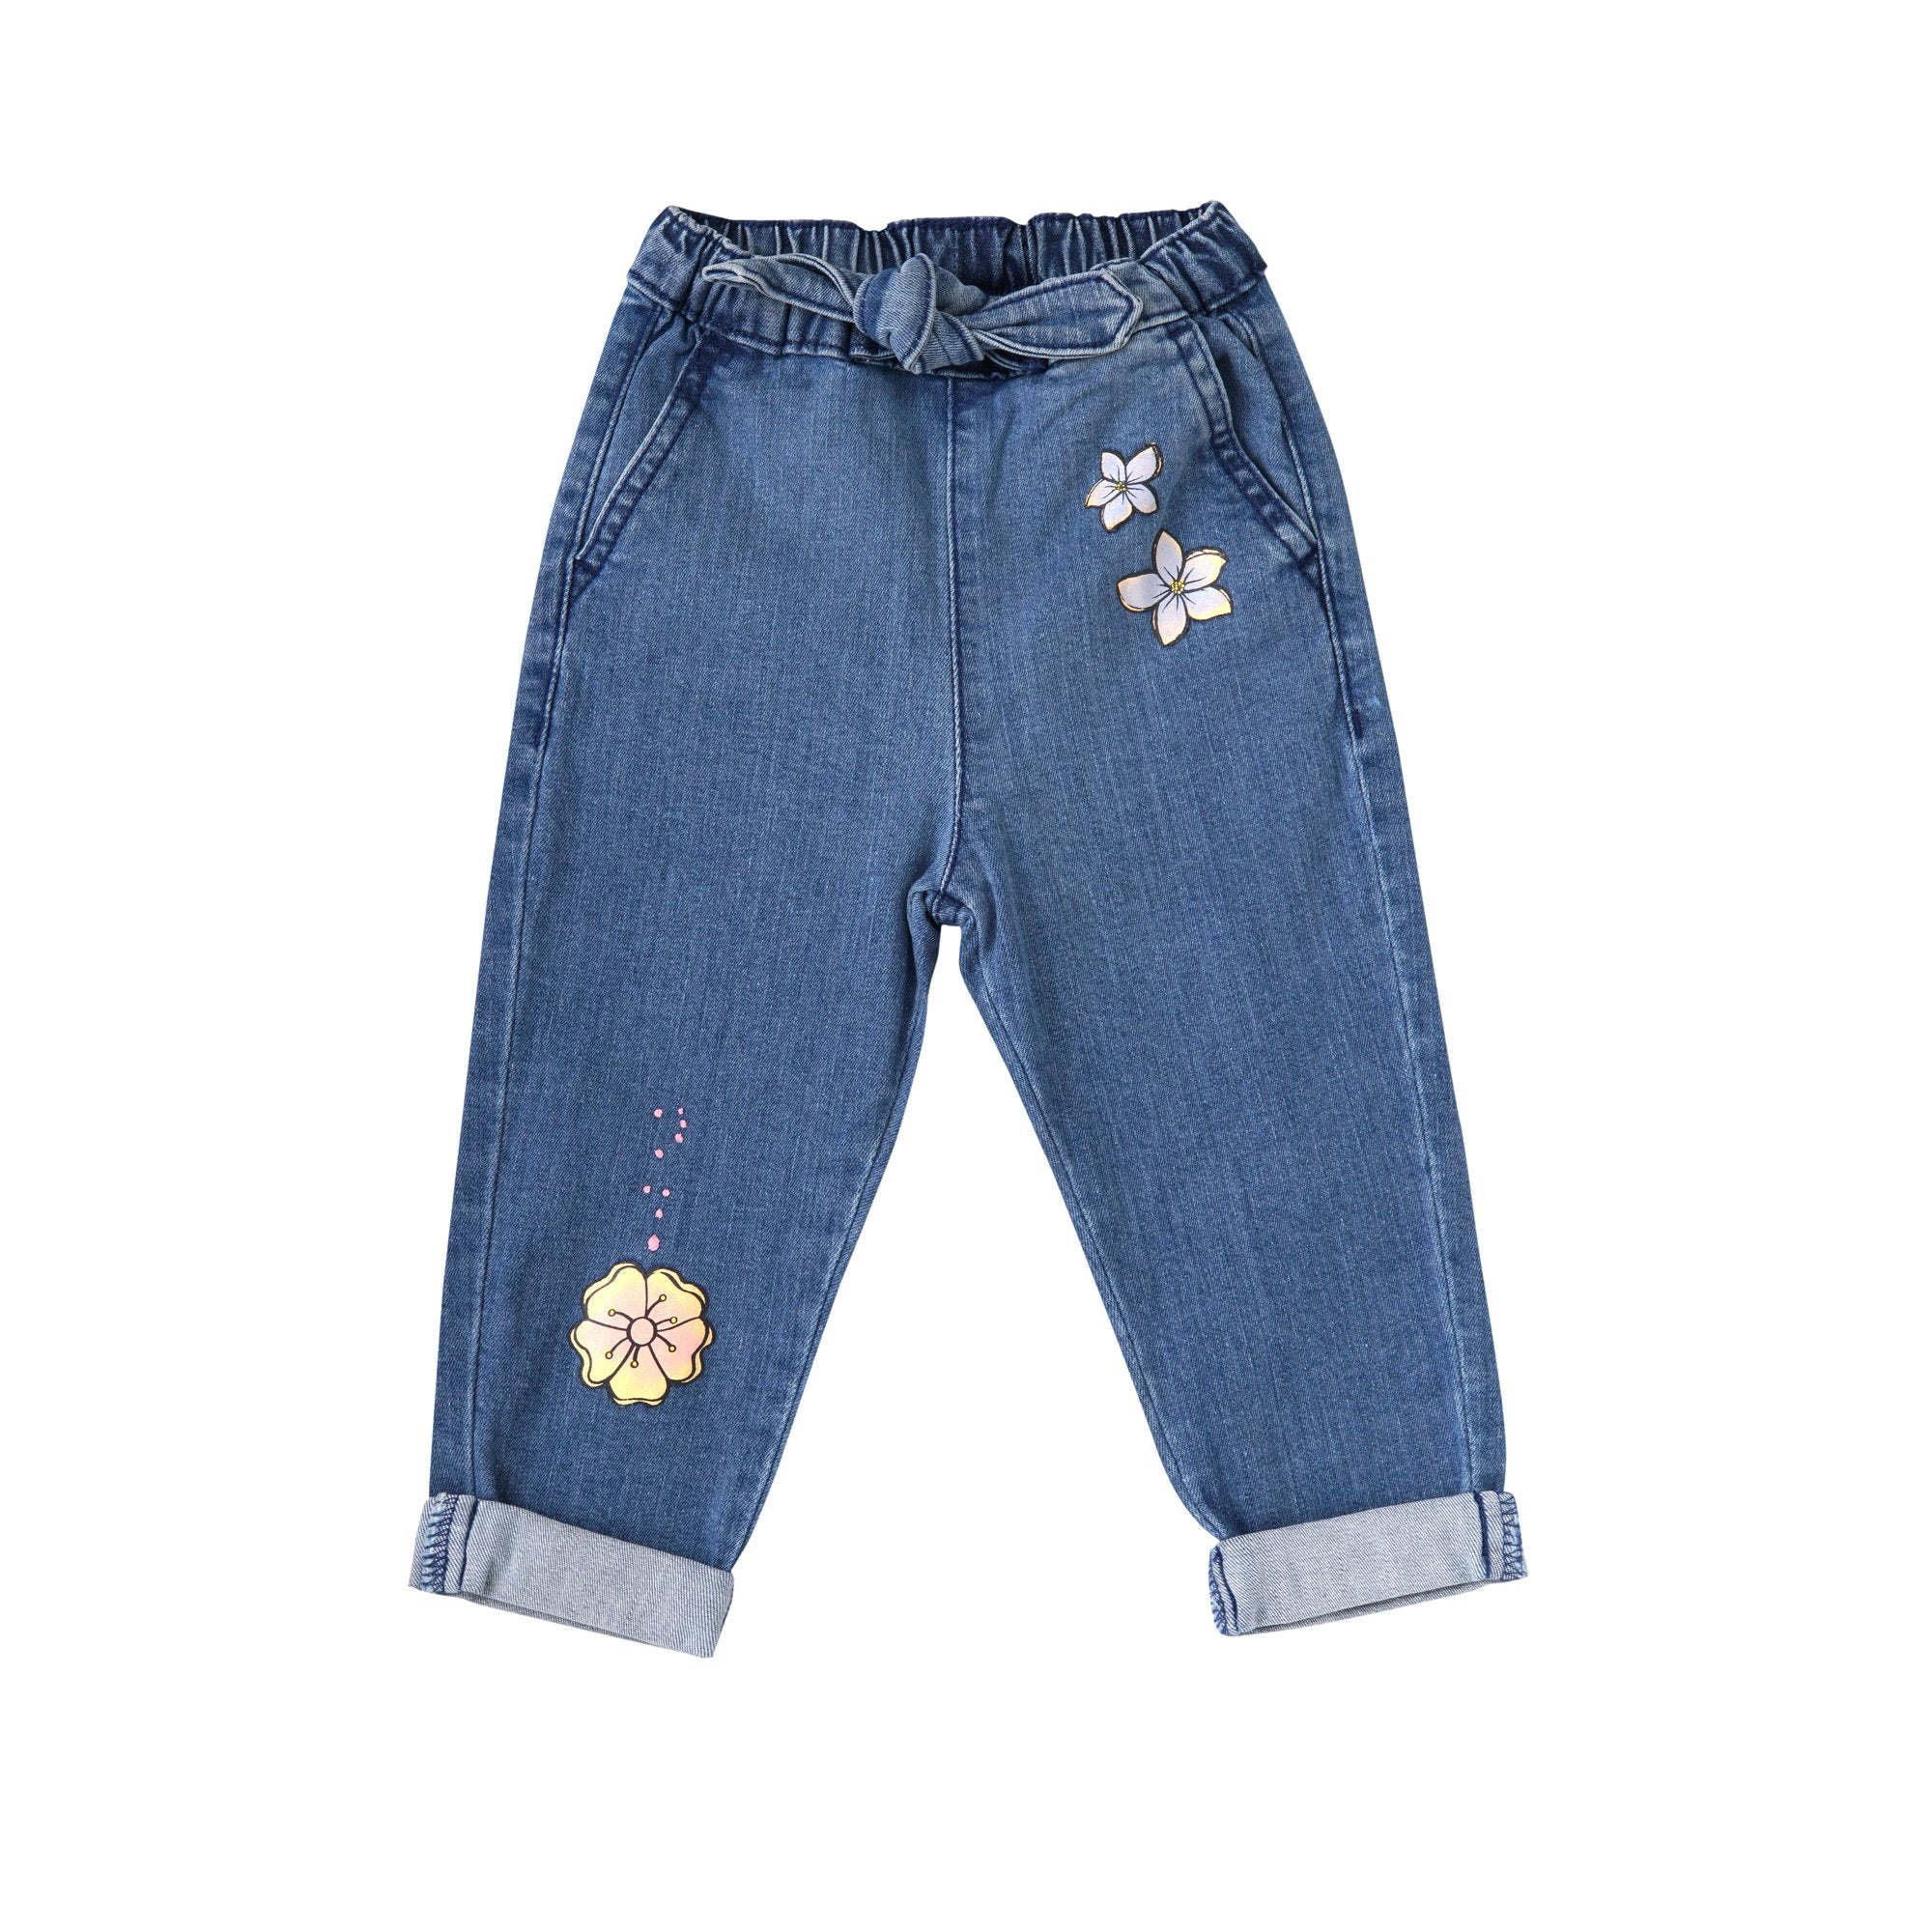 Poney Girls Jeans 7827 (6mths-12yrs)